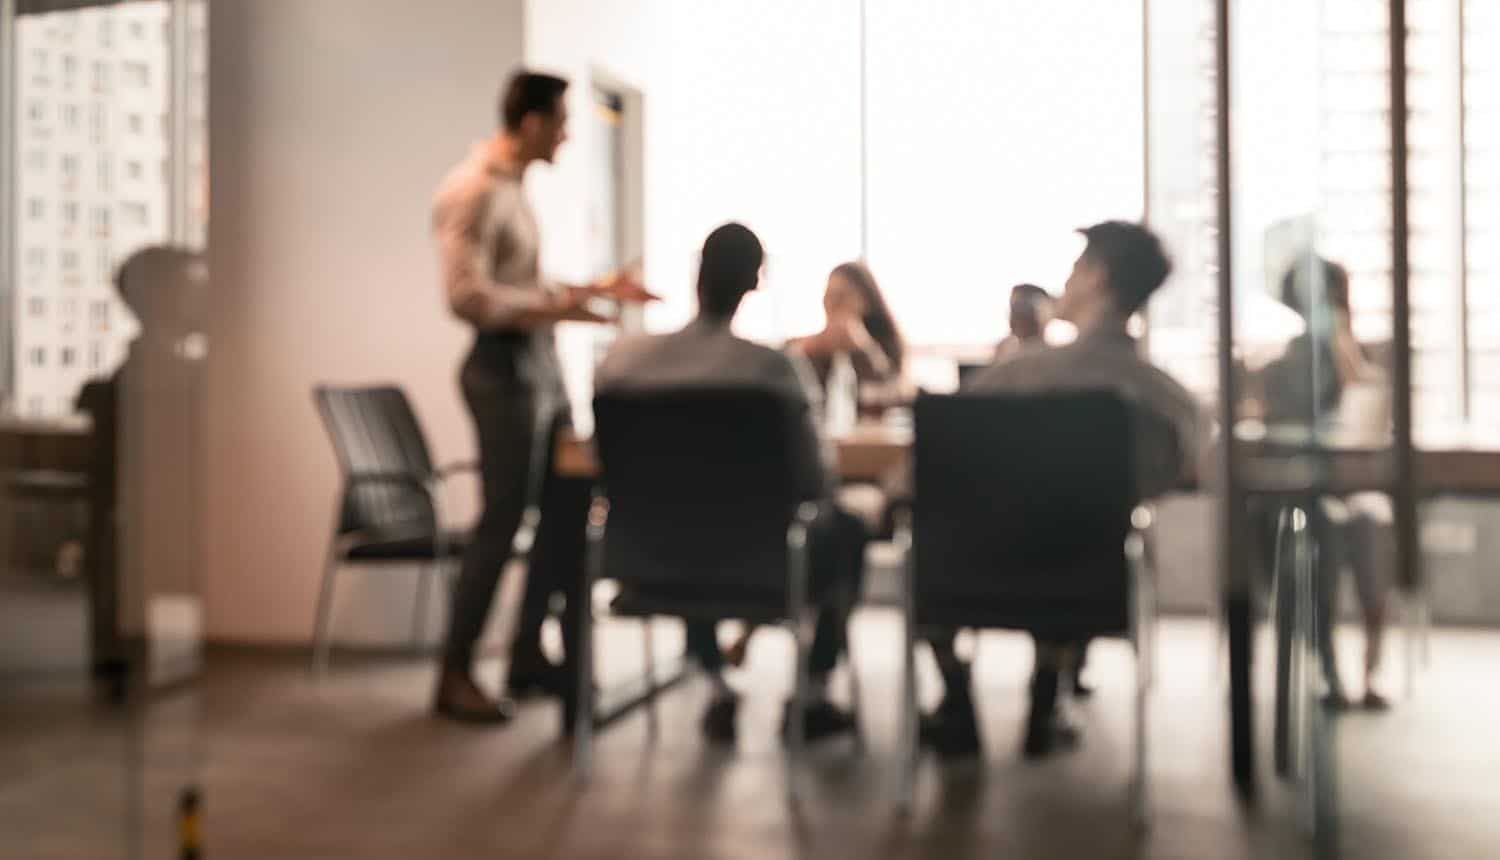 Colleagues having meeting in boardroom showing ransomware issue